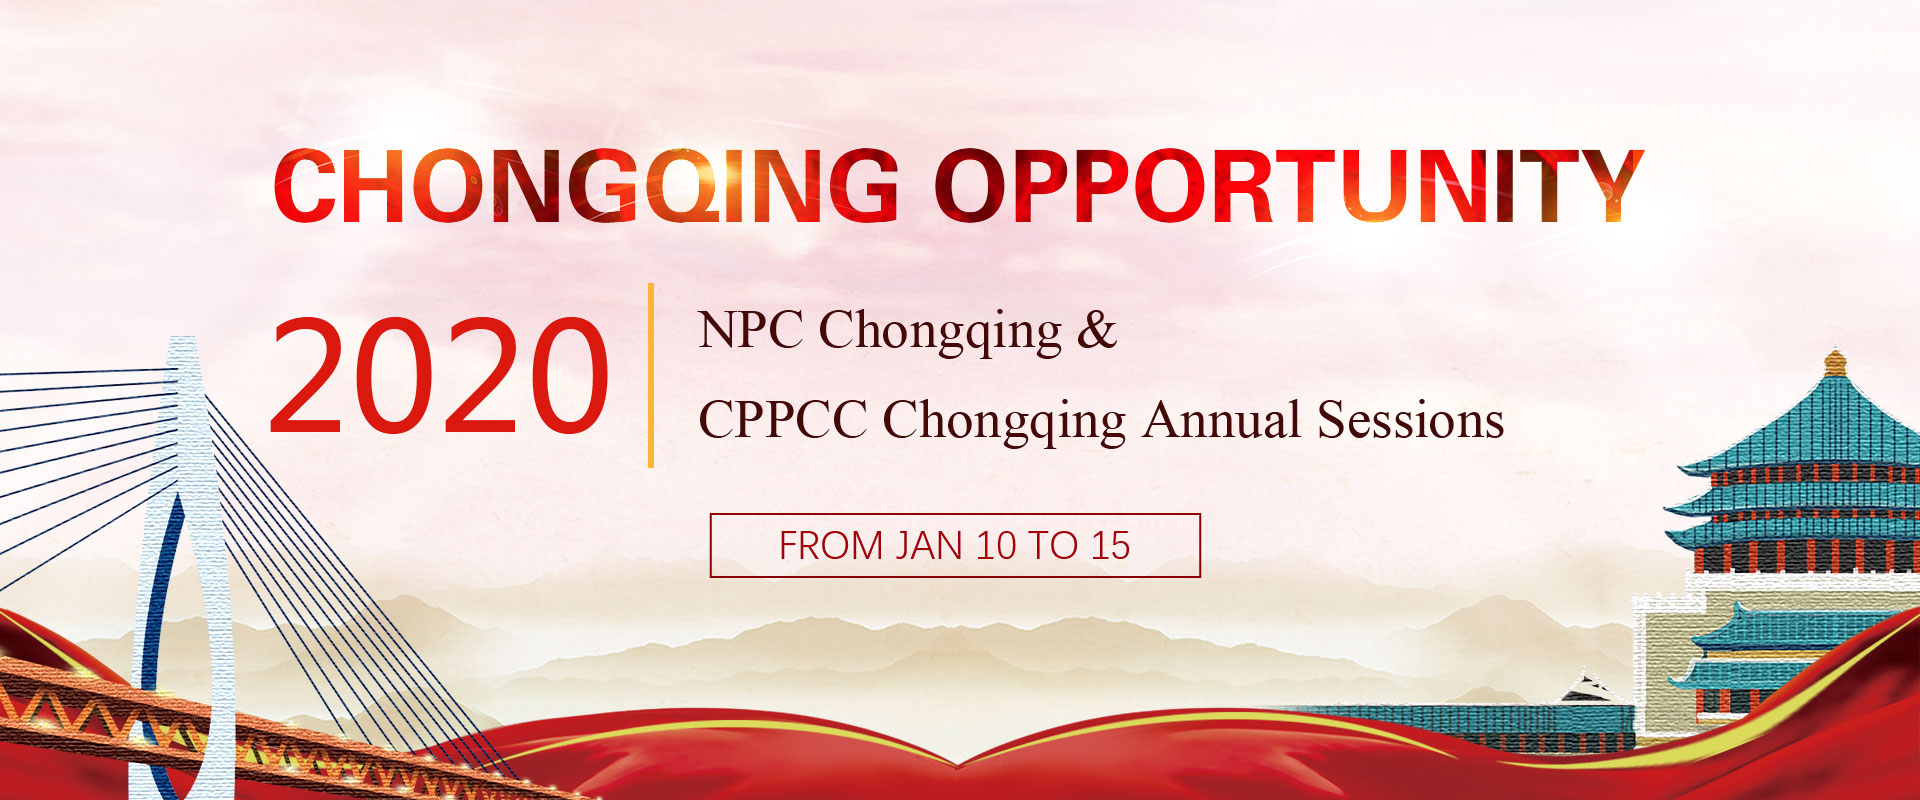 2020 Chongqing Two Sessions